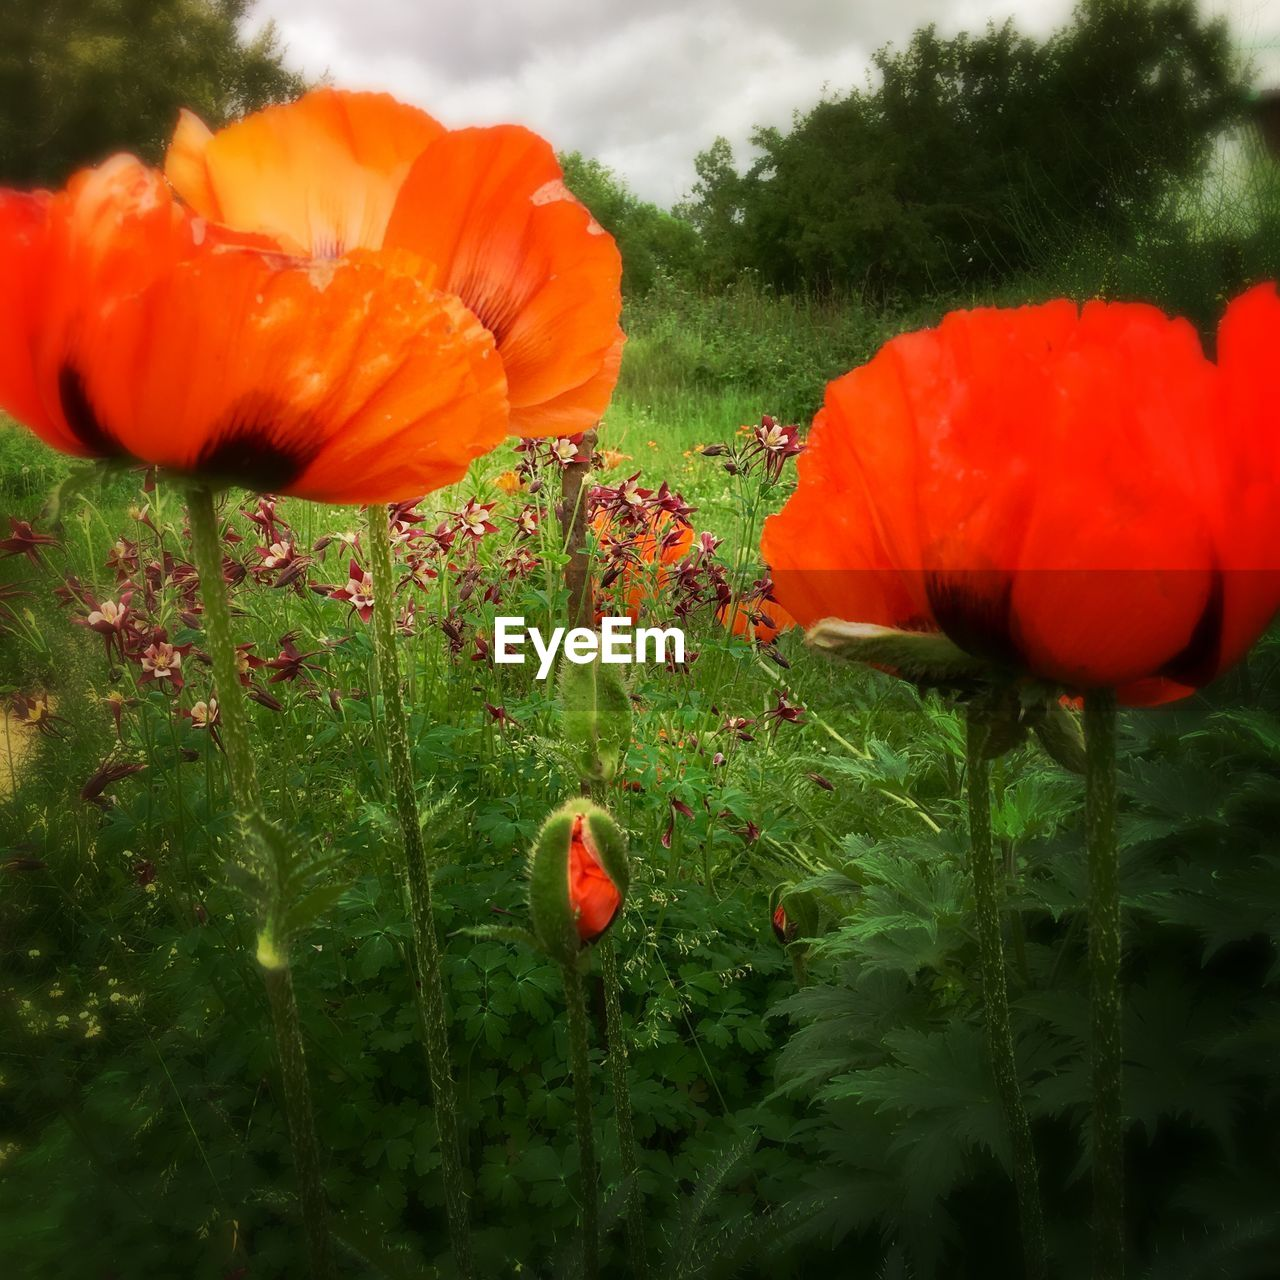 flower, growth, beauty in nature, nature, freshness, petal, poppy, orange color, fragility, plant, flower head, no people, red, tulip, outdoors, day, blooming, close-up, sky